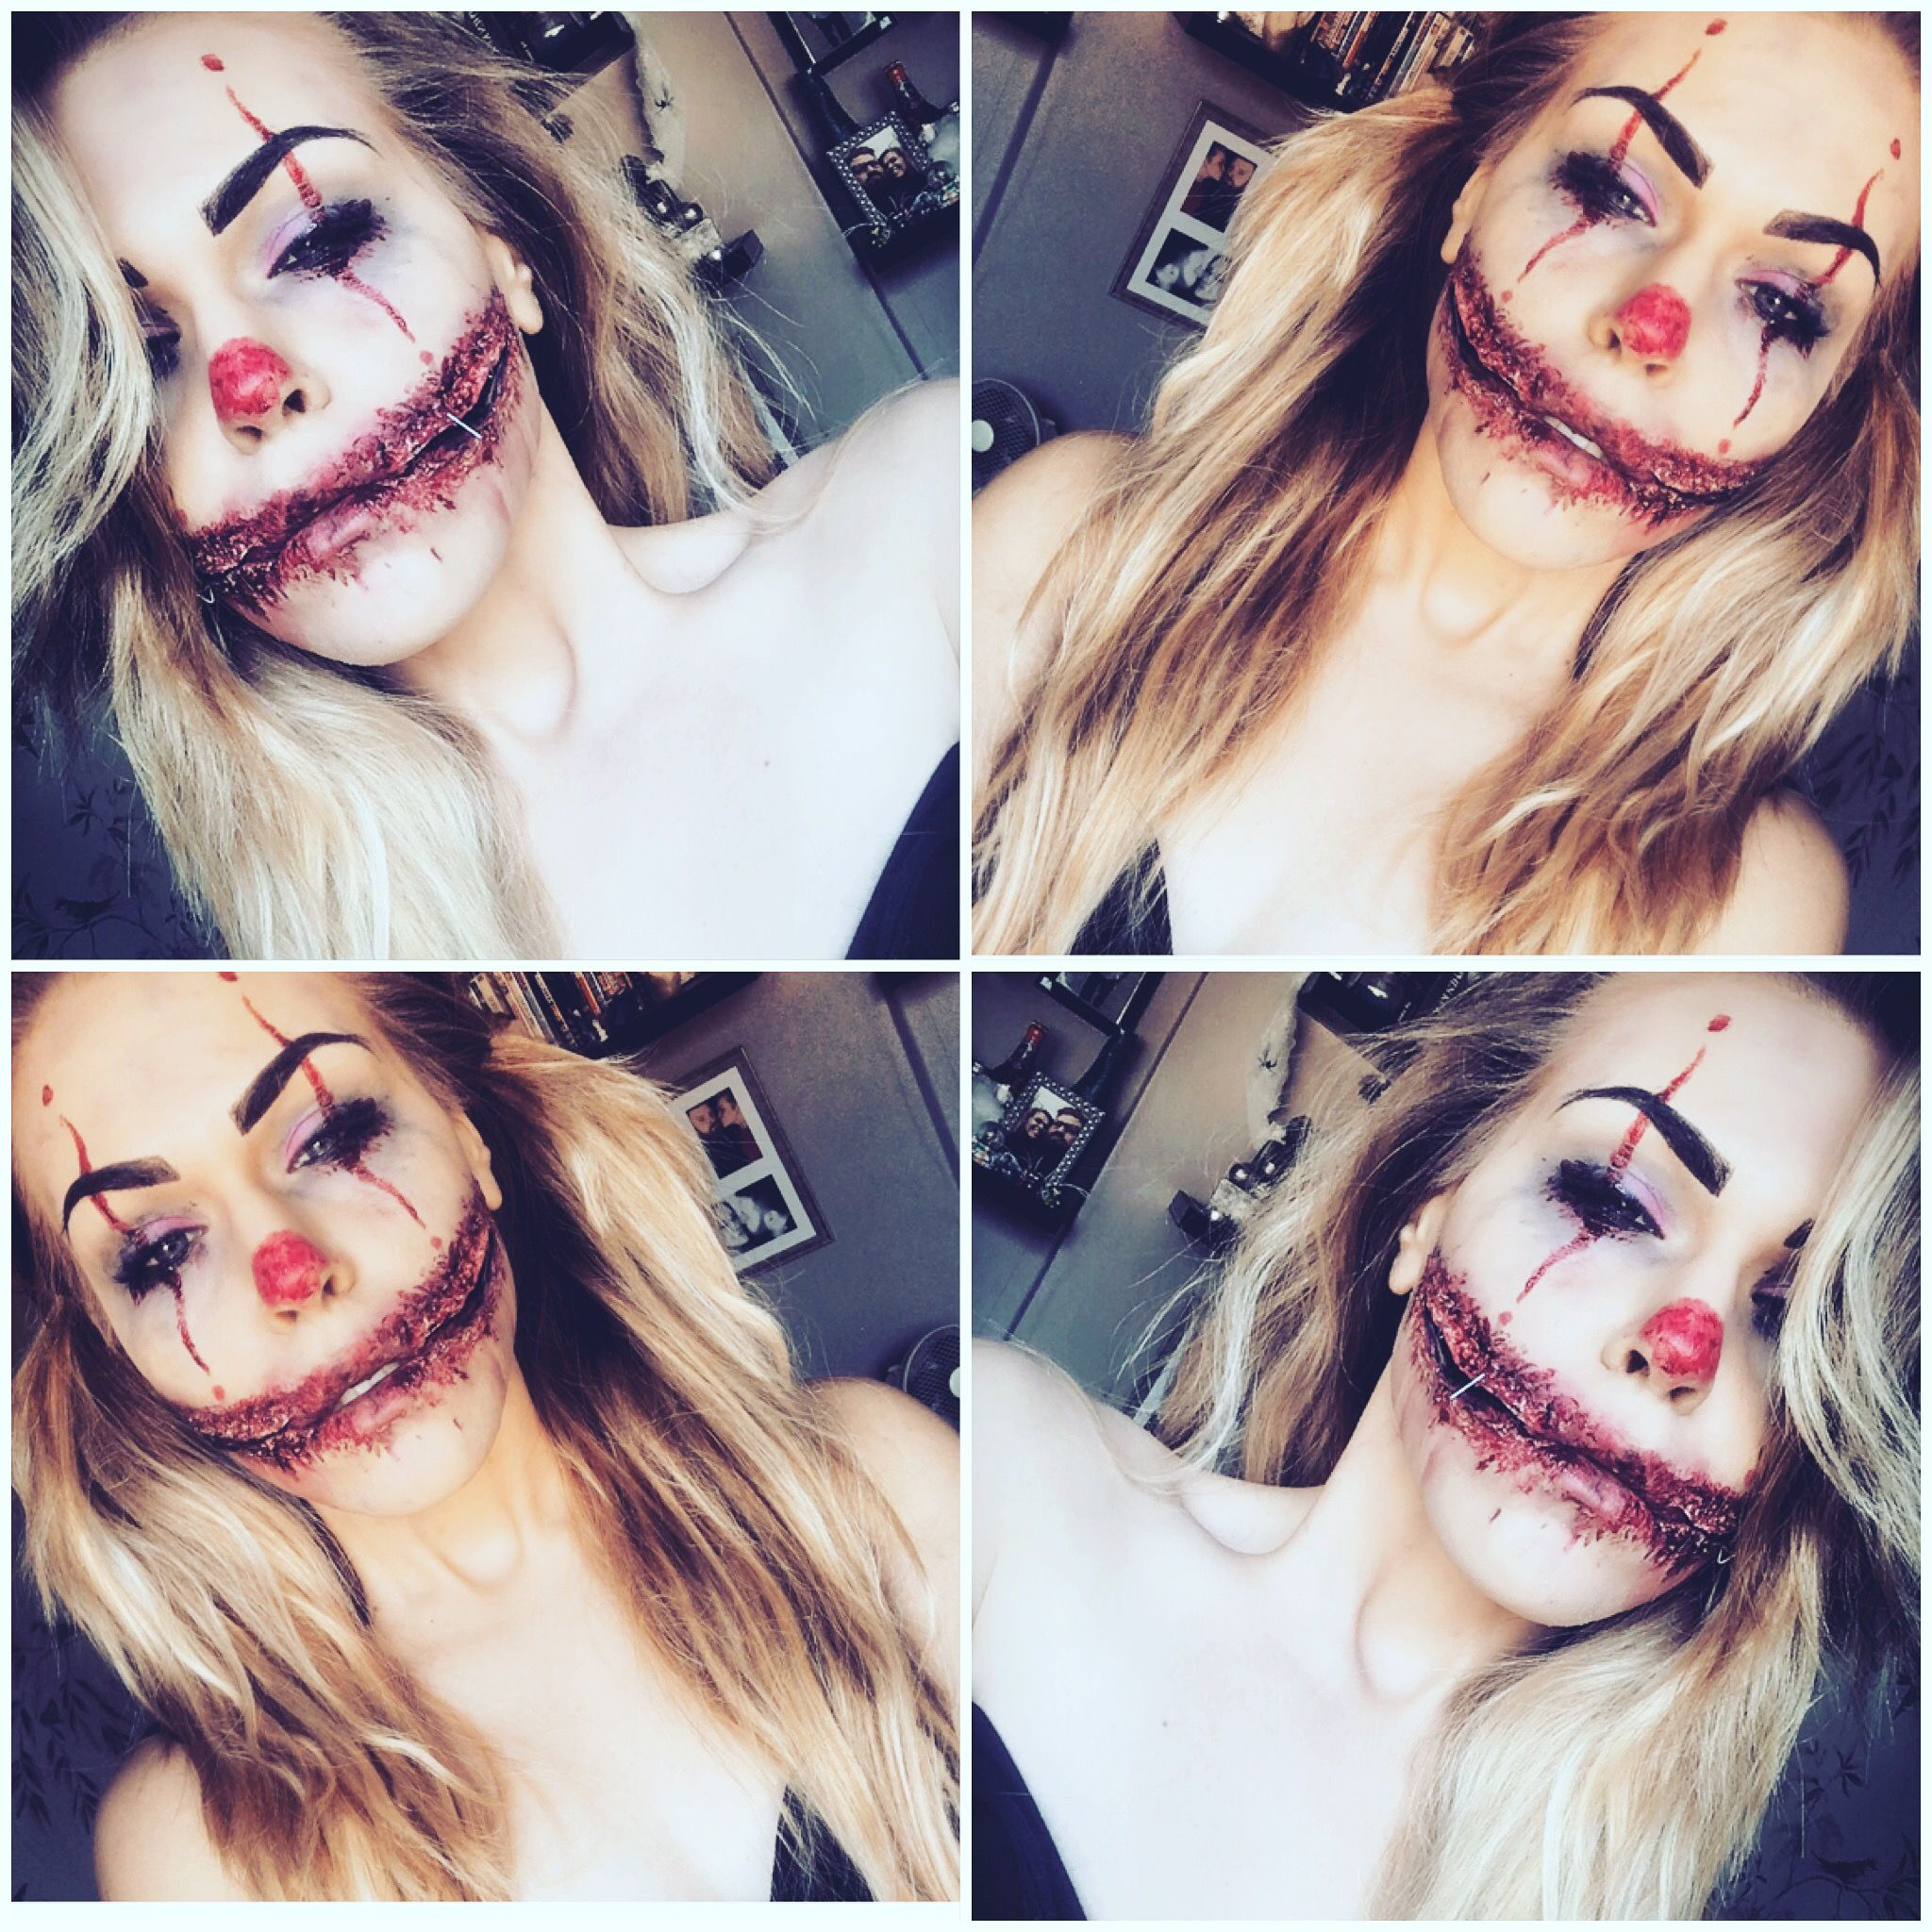 Horror clown Halloween Makeup ! Split mouth clown gore makeup ...